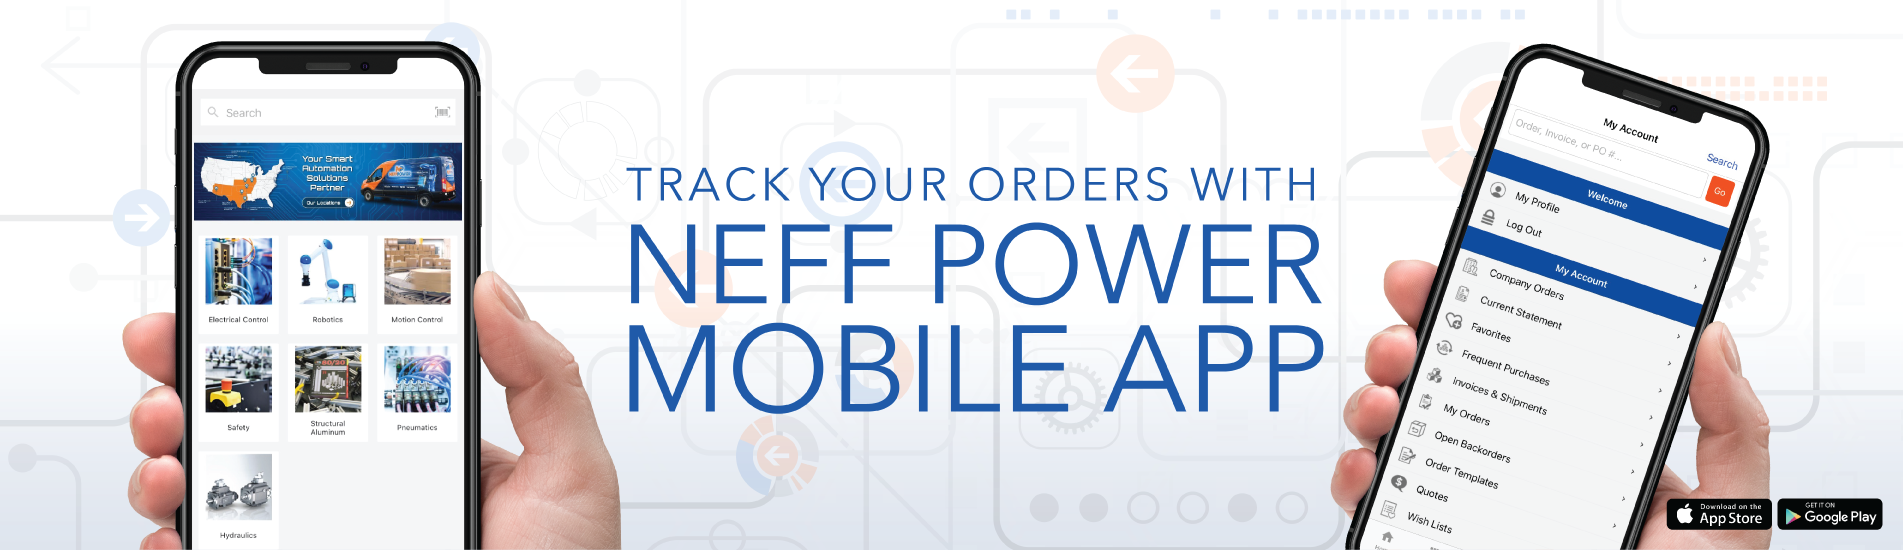 Download the Neff Power Mobile App today